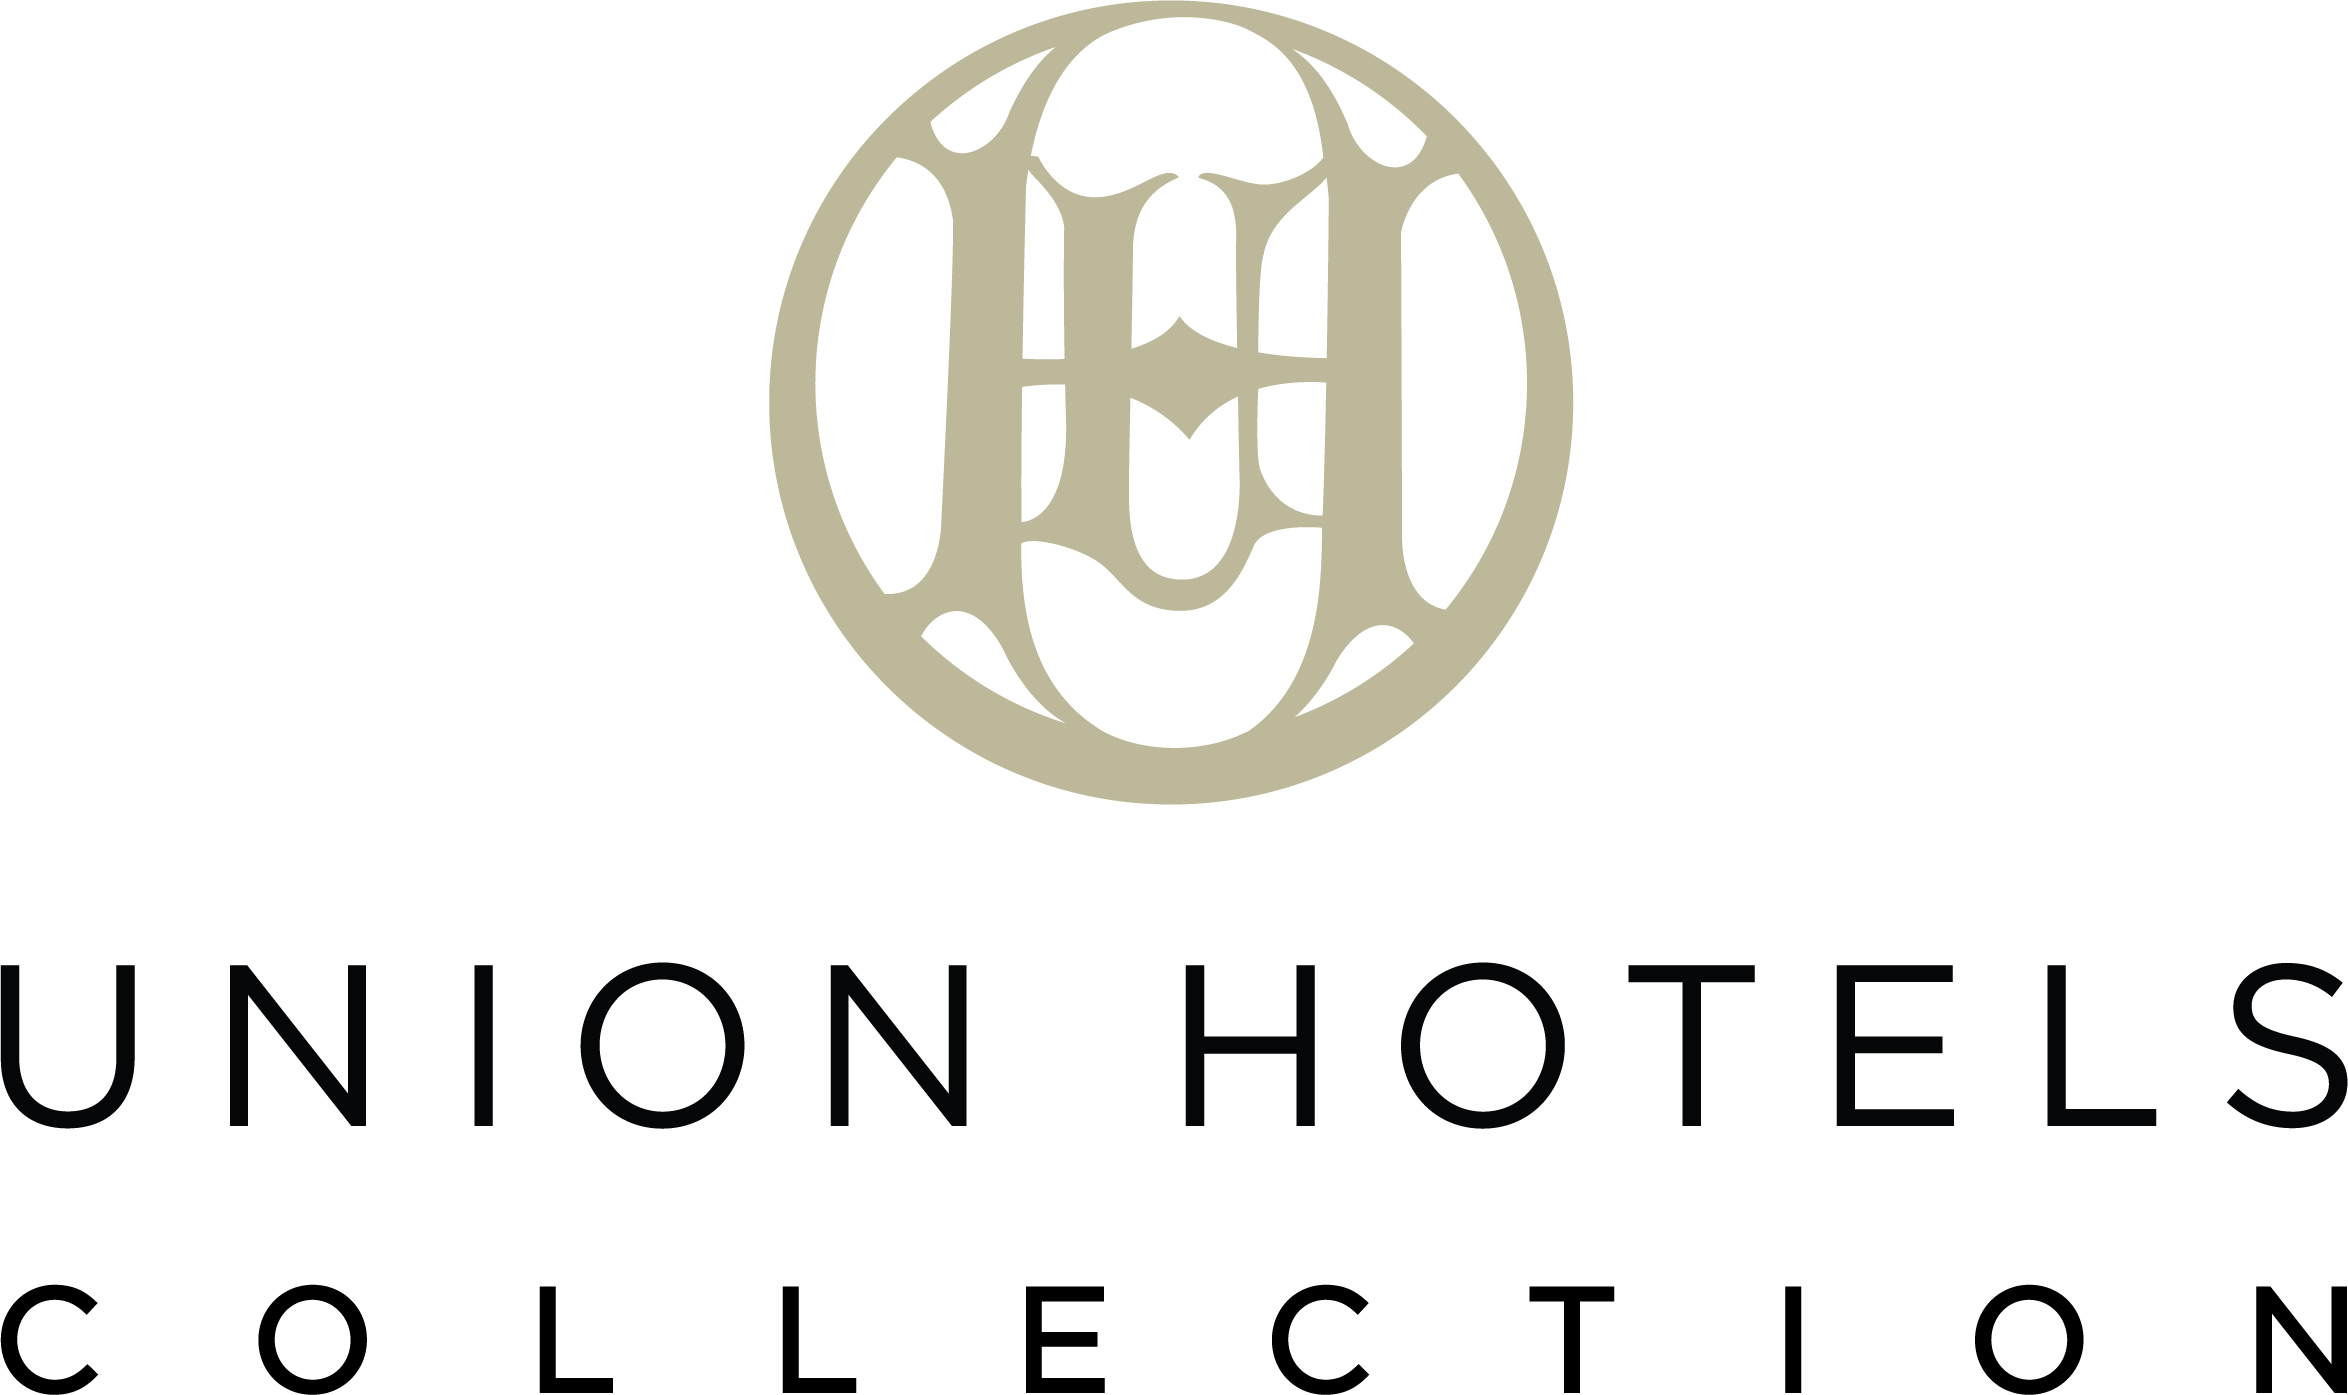 Union hoteli postajajo Union Hotels Collection tudi z novo ...